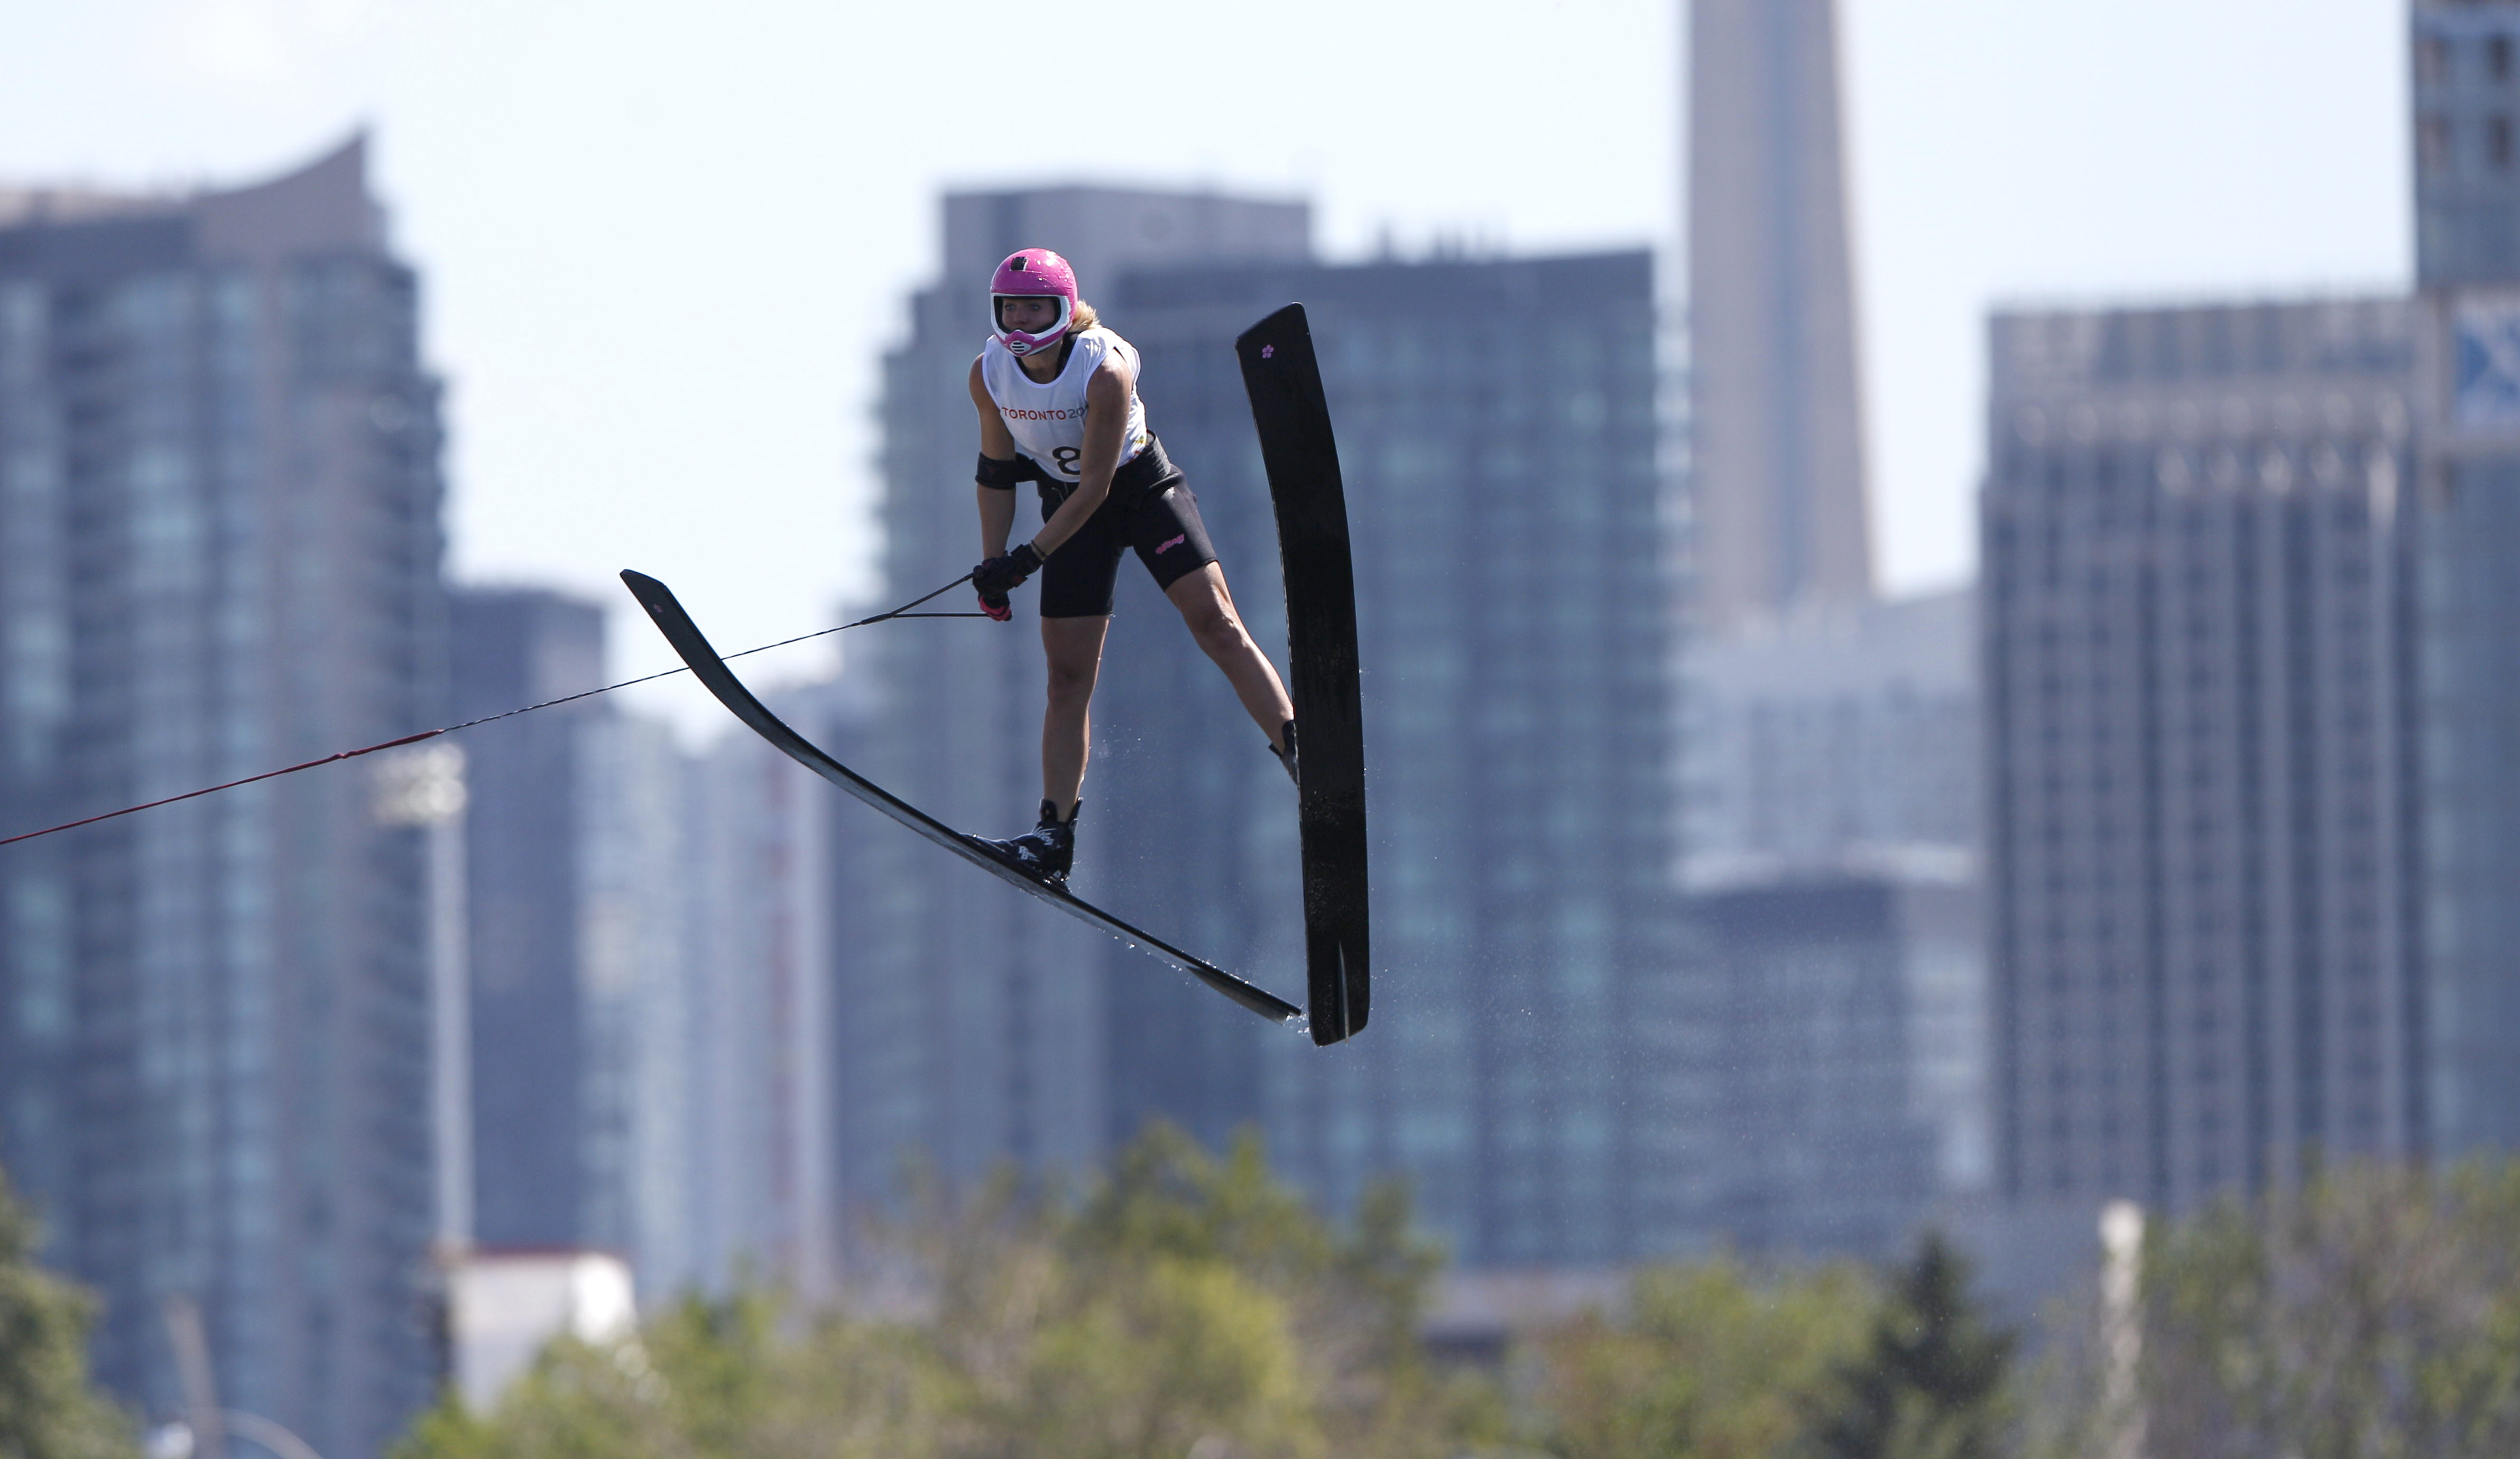 Canada's Whitney McClintock qualified in second place for the Finals of the Women's Jump at WaterSki and Wakeboard. to Argentina in pool play the Pan Am Games in Toronto Tuesday, July 21, 2015. COC Photo by Michael P. Hall